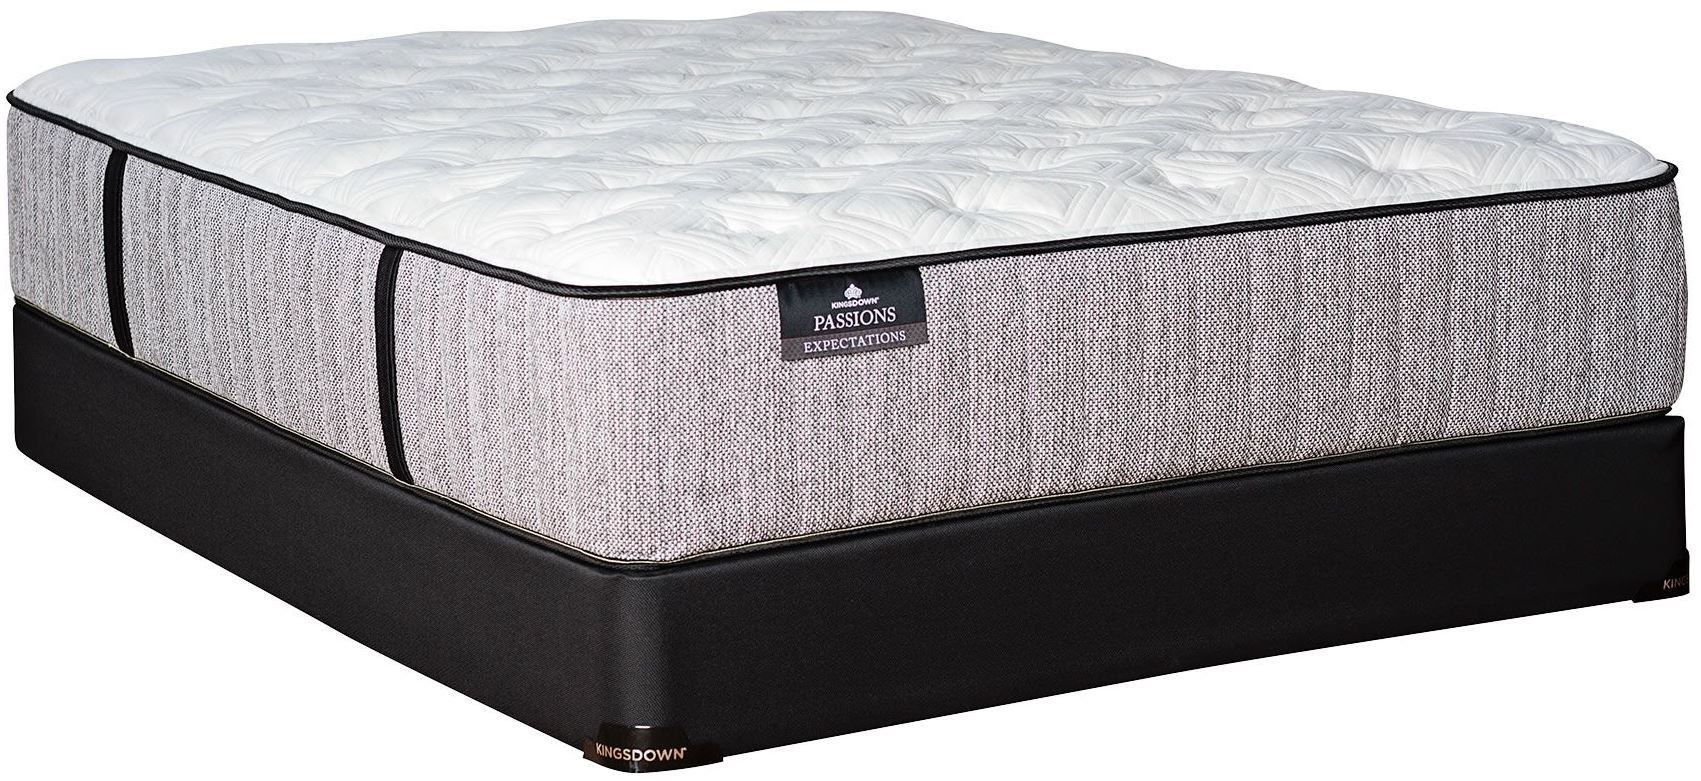 passions expectations plush full extra long mattress with foundation 816 1220 fxl fnd kingsdown. Black Bedroom Furniture Sets. Home Design Ideas